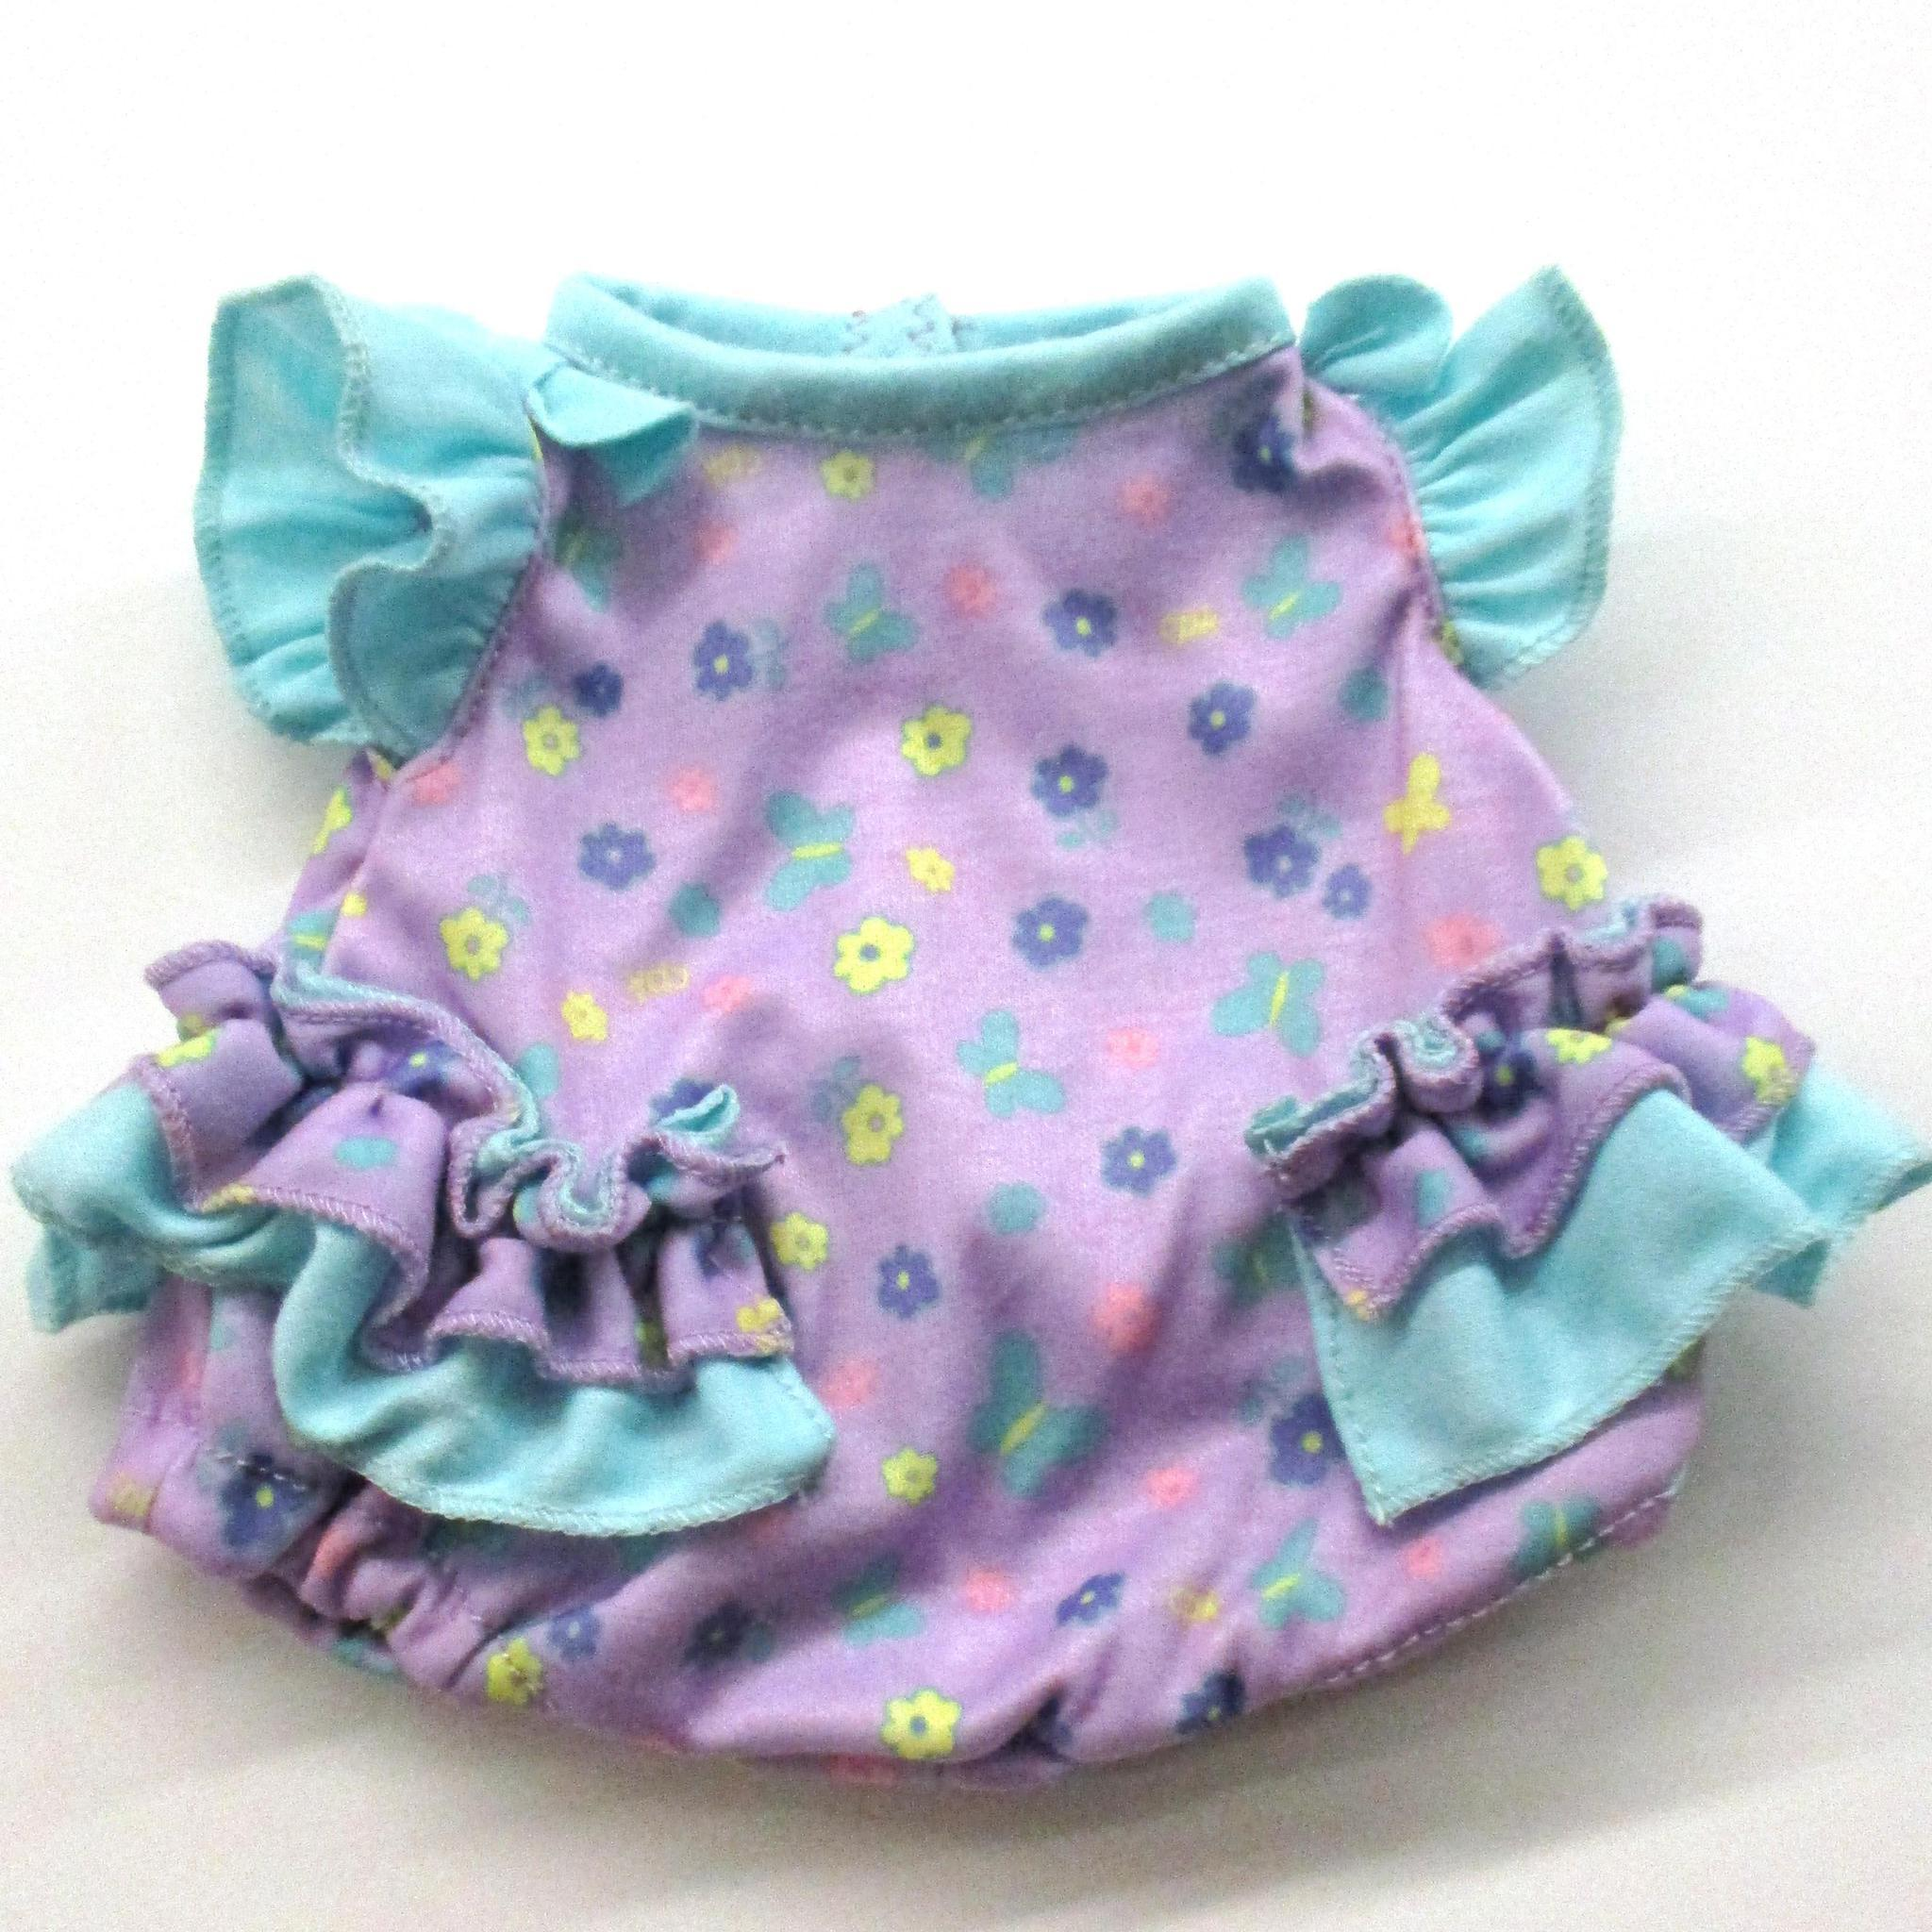 Baby Girl Fashion Purple & Teal Romper Fits 12.5""